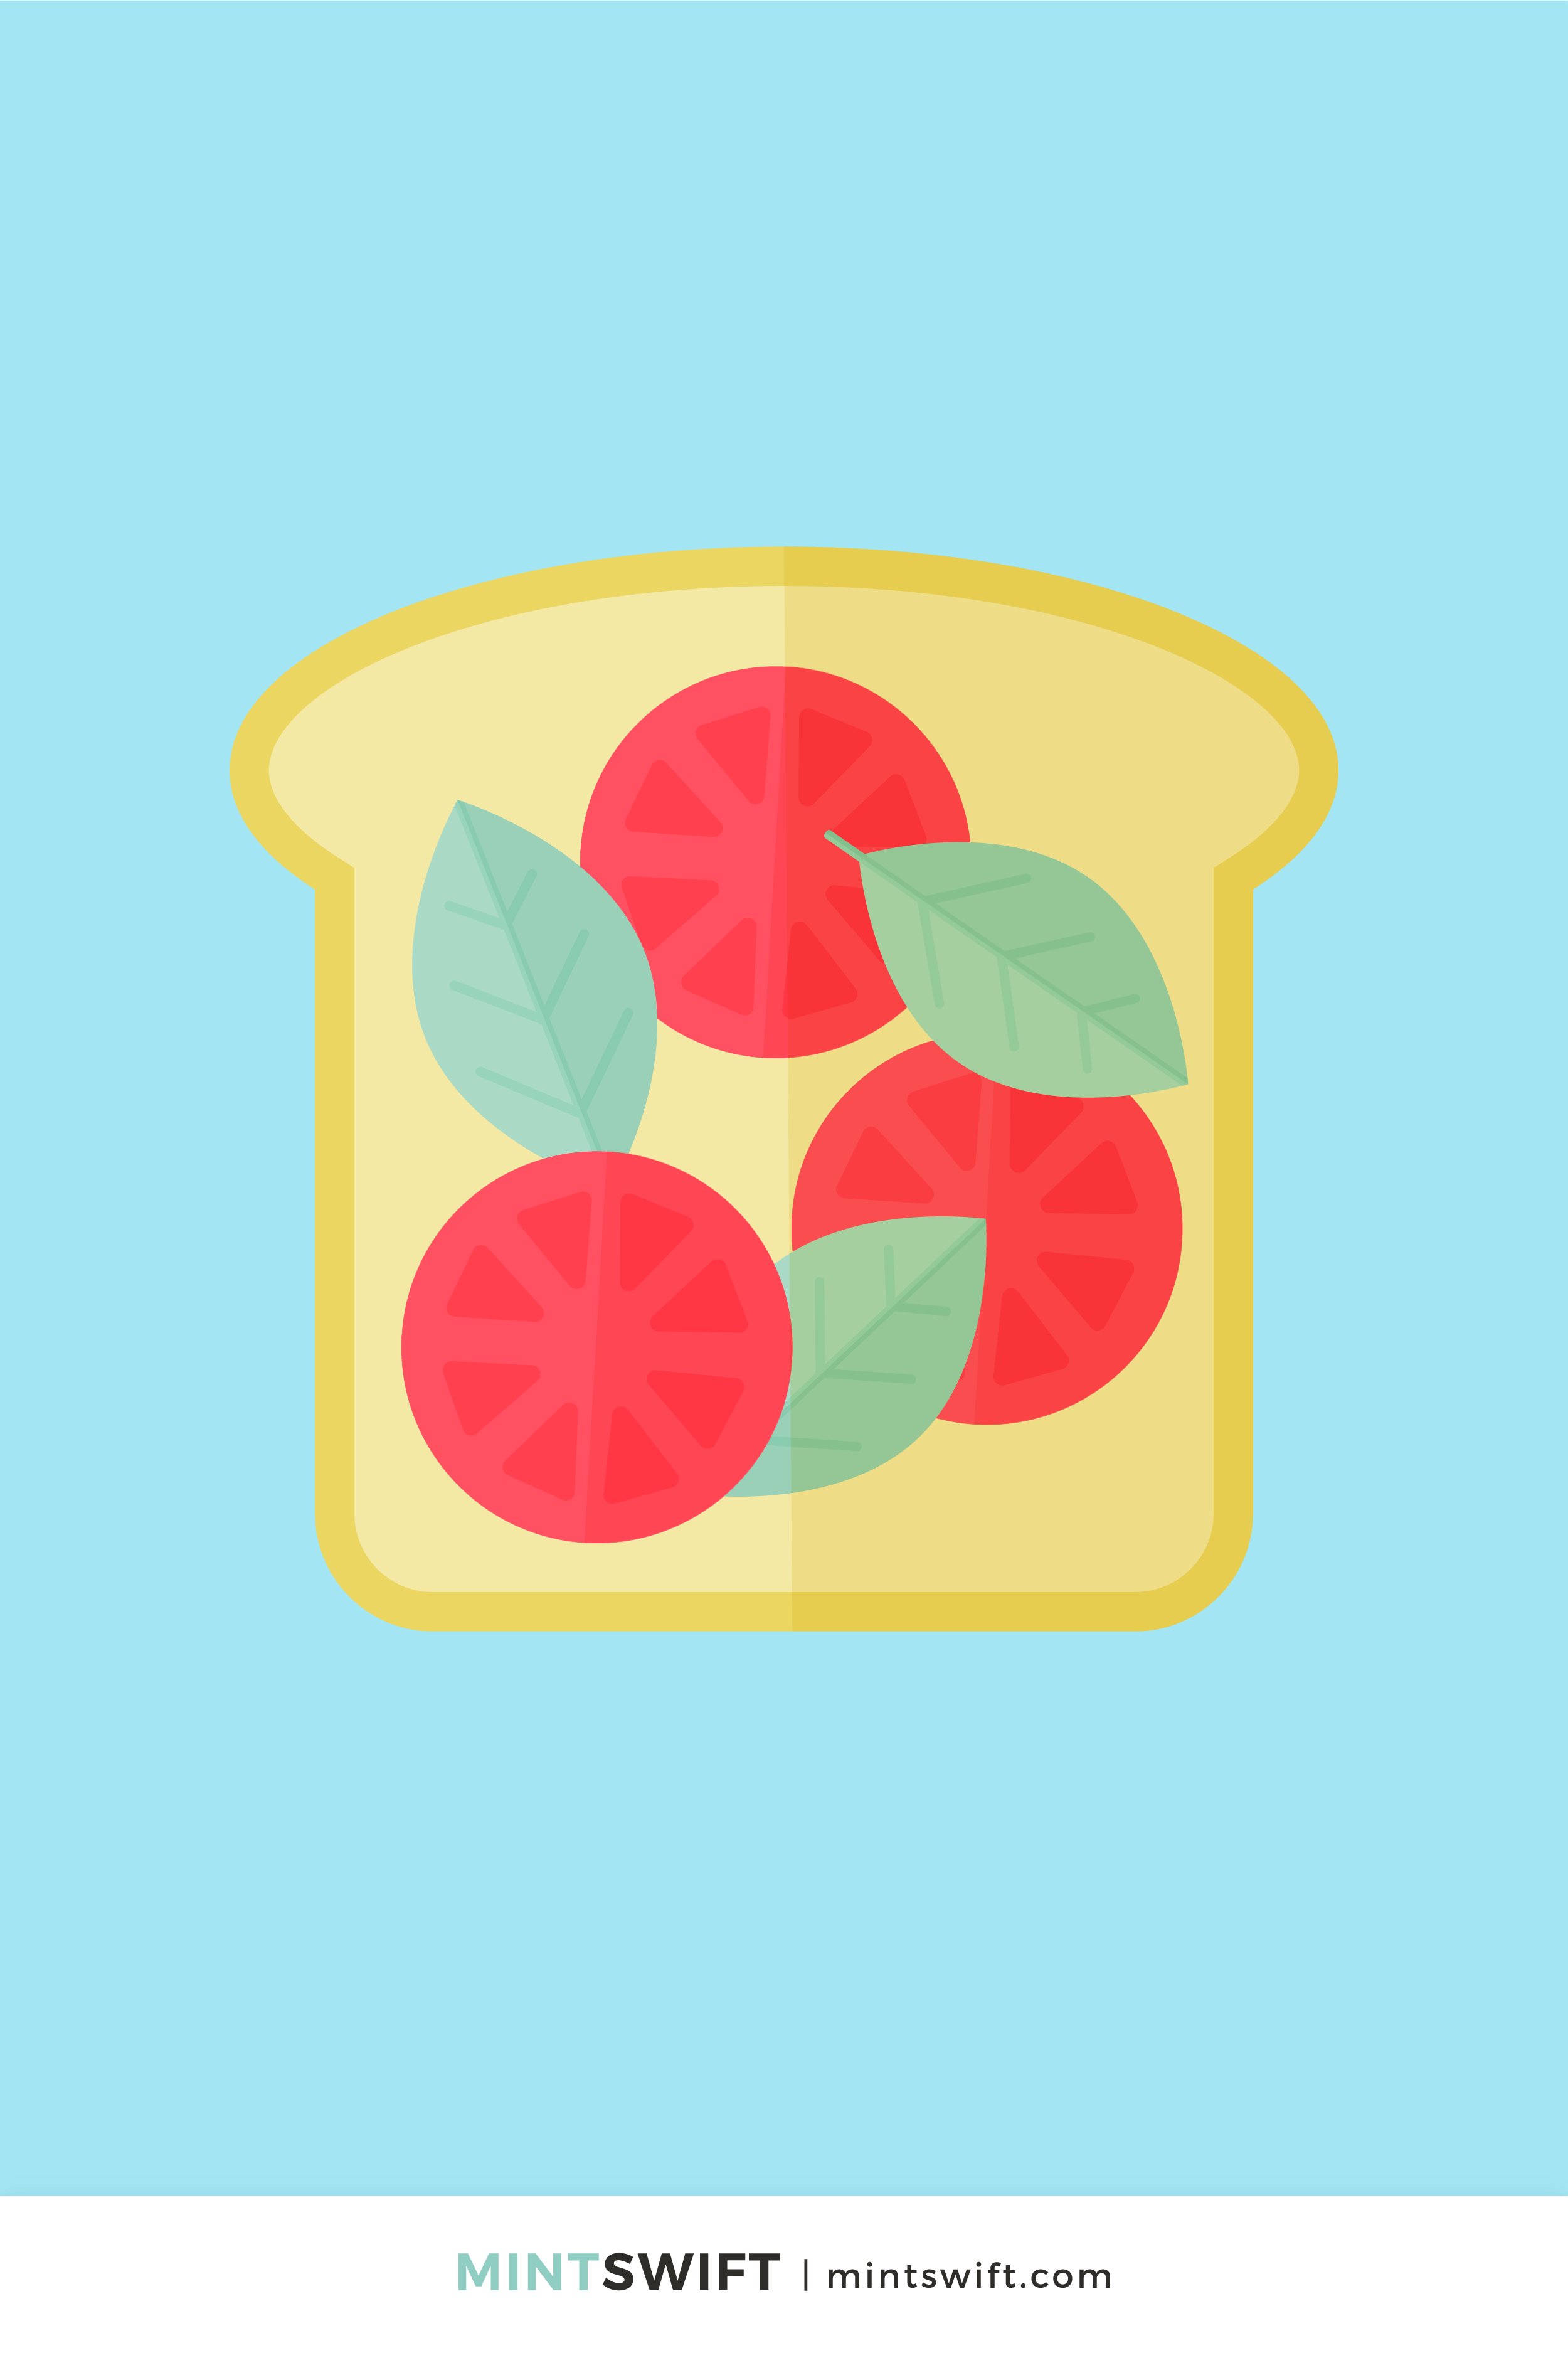 Vector illustration of a toast with tomato slices and basil leaves in flat design style on a sky blue background